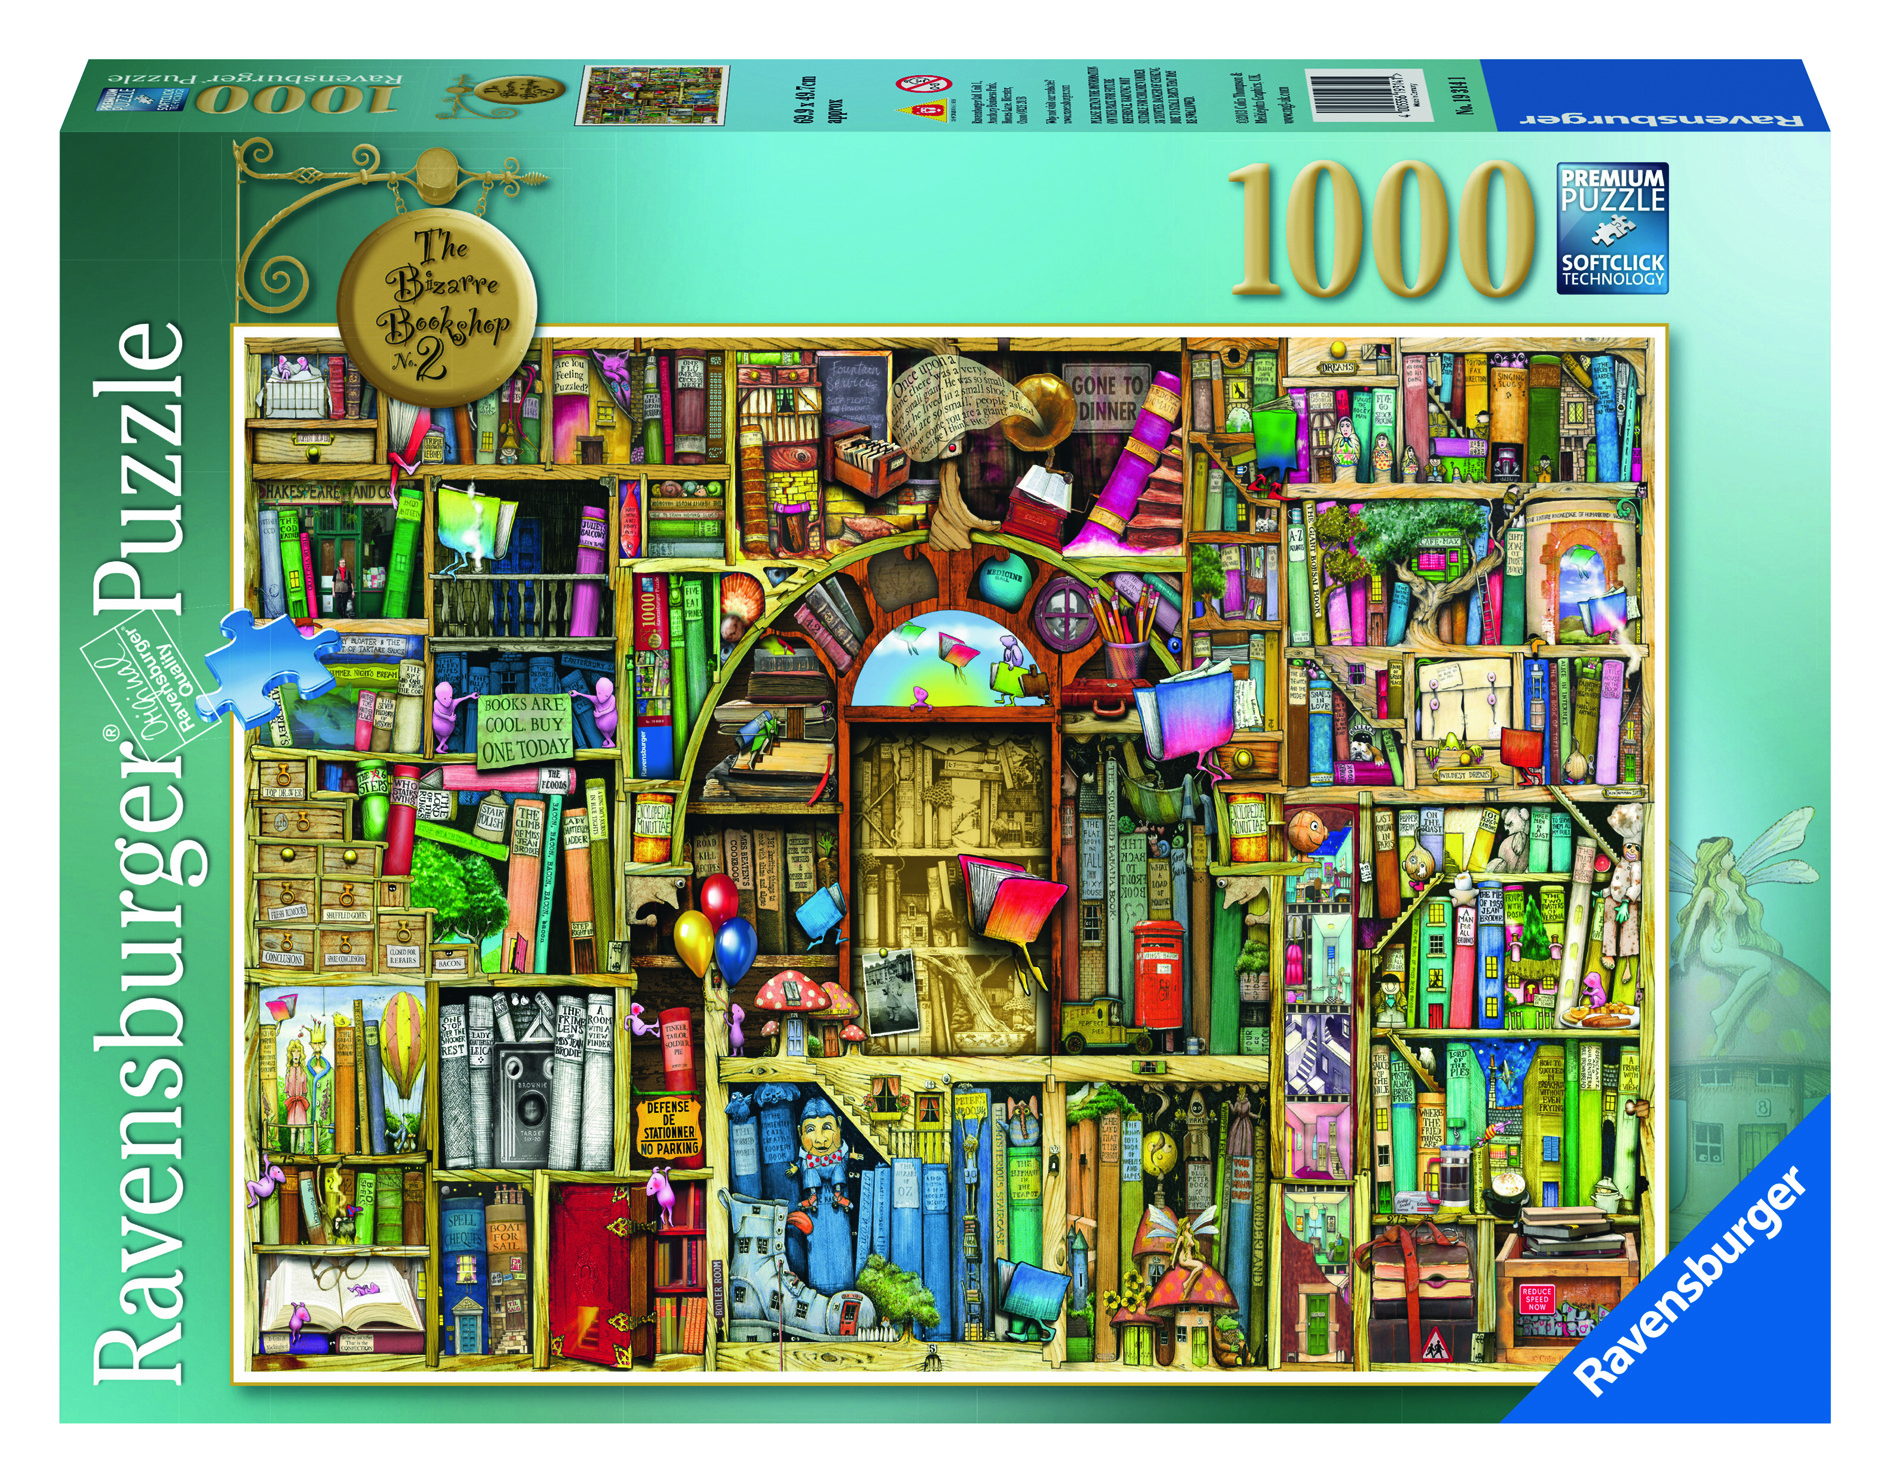 Ravensburger Colin Thompson - The Bizarre Bookshop No.2 Puzzle 1000pc